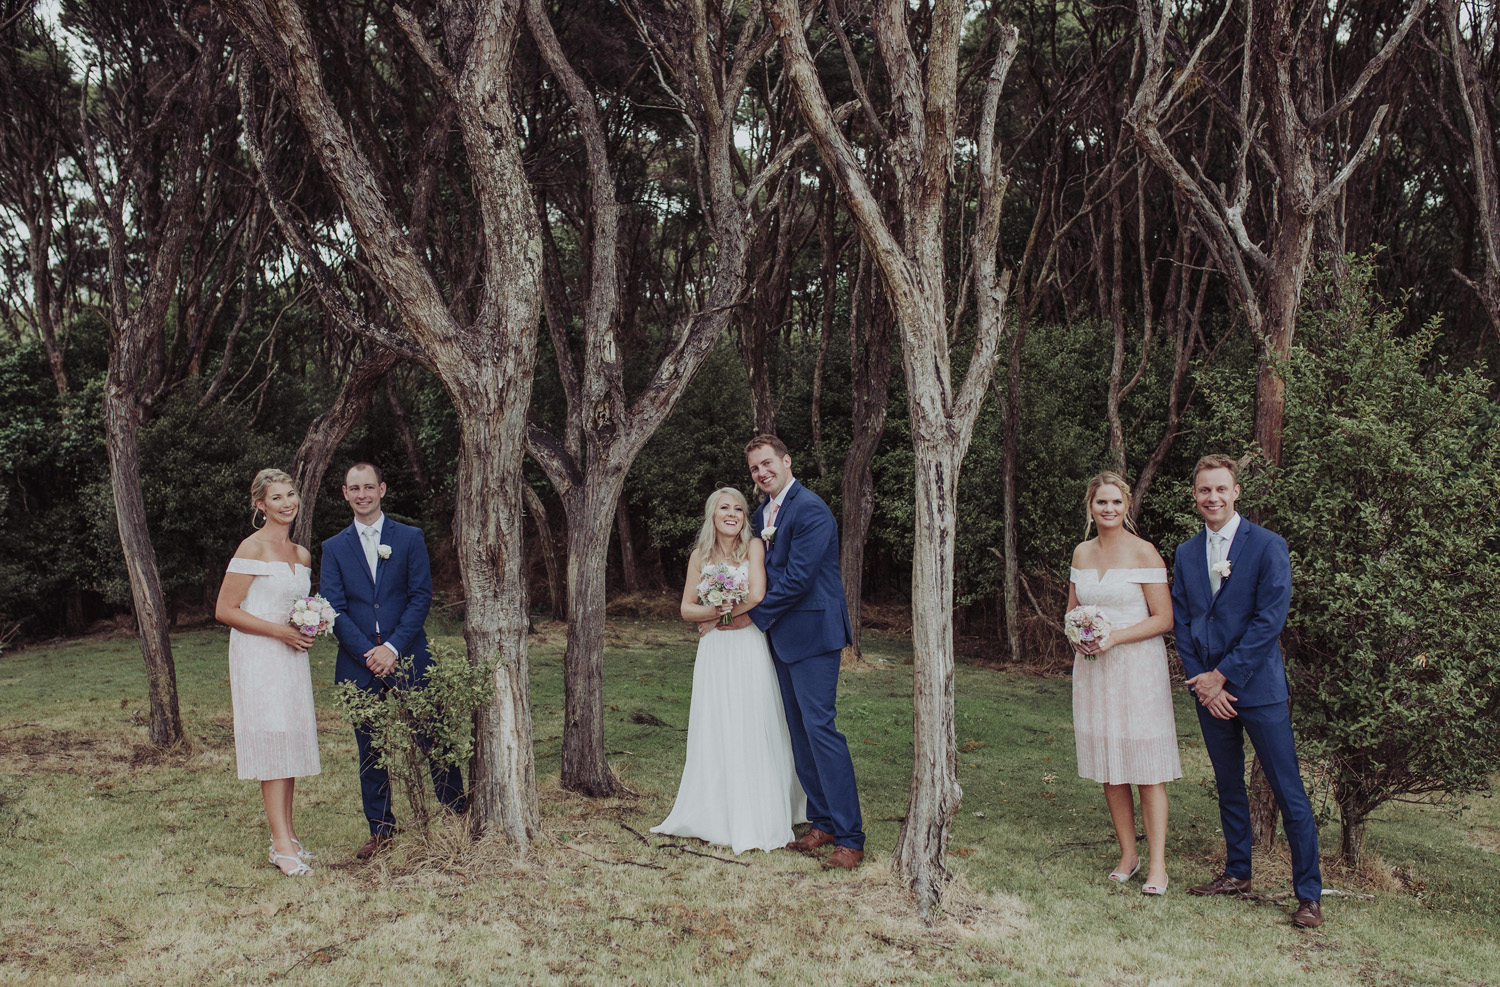 Bridal party in woods at Mudbrick wedding photo